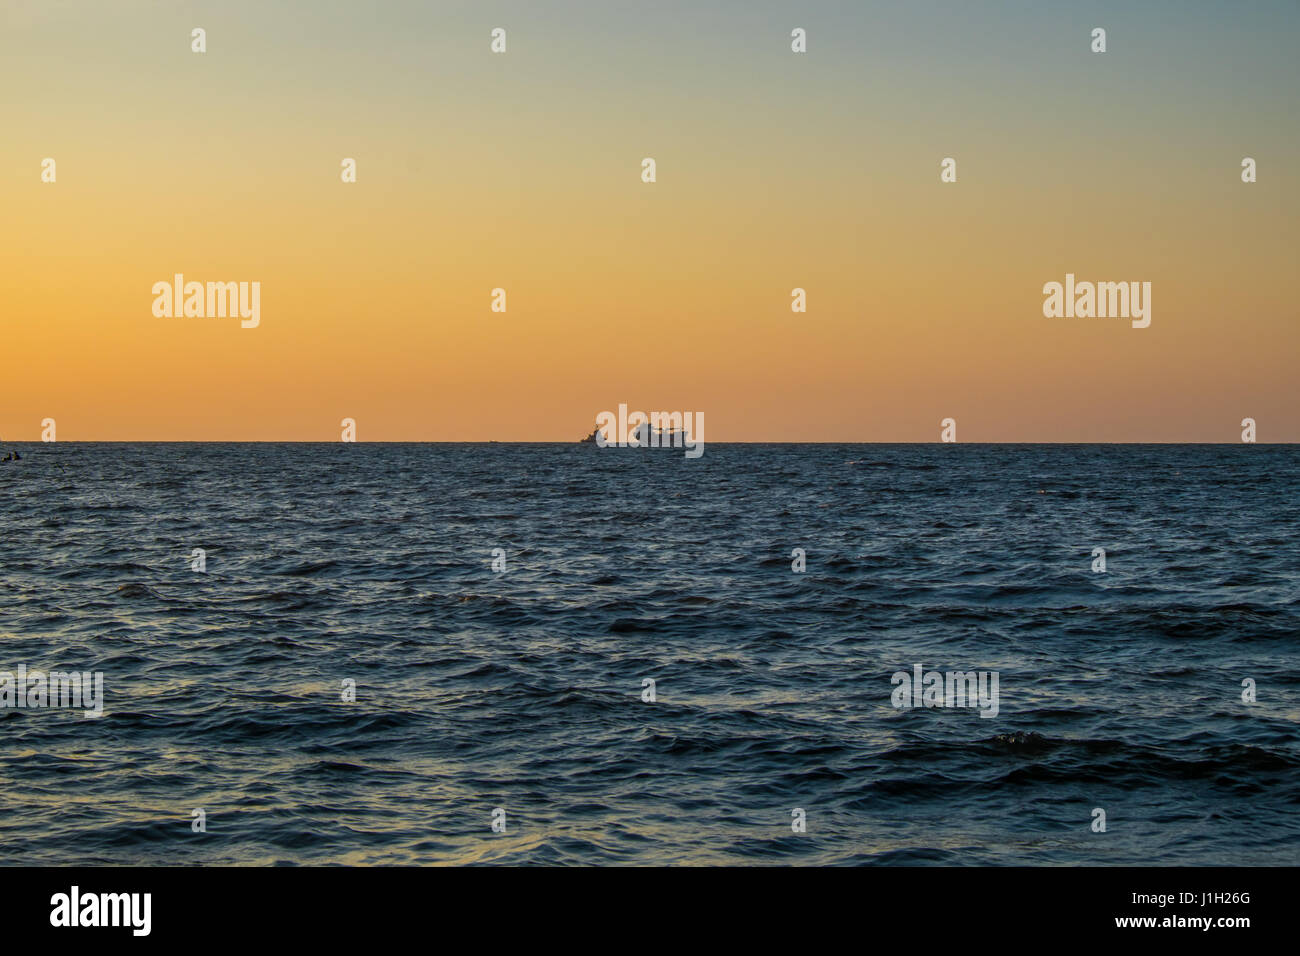 Ships berthed in the South China sea. - Stock Image